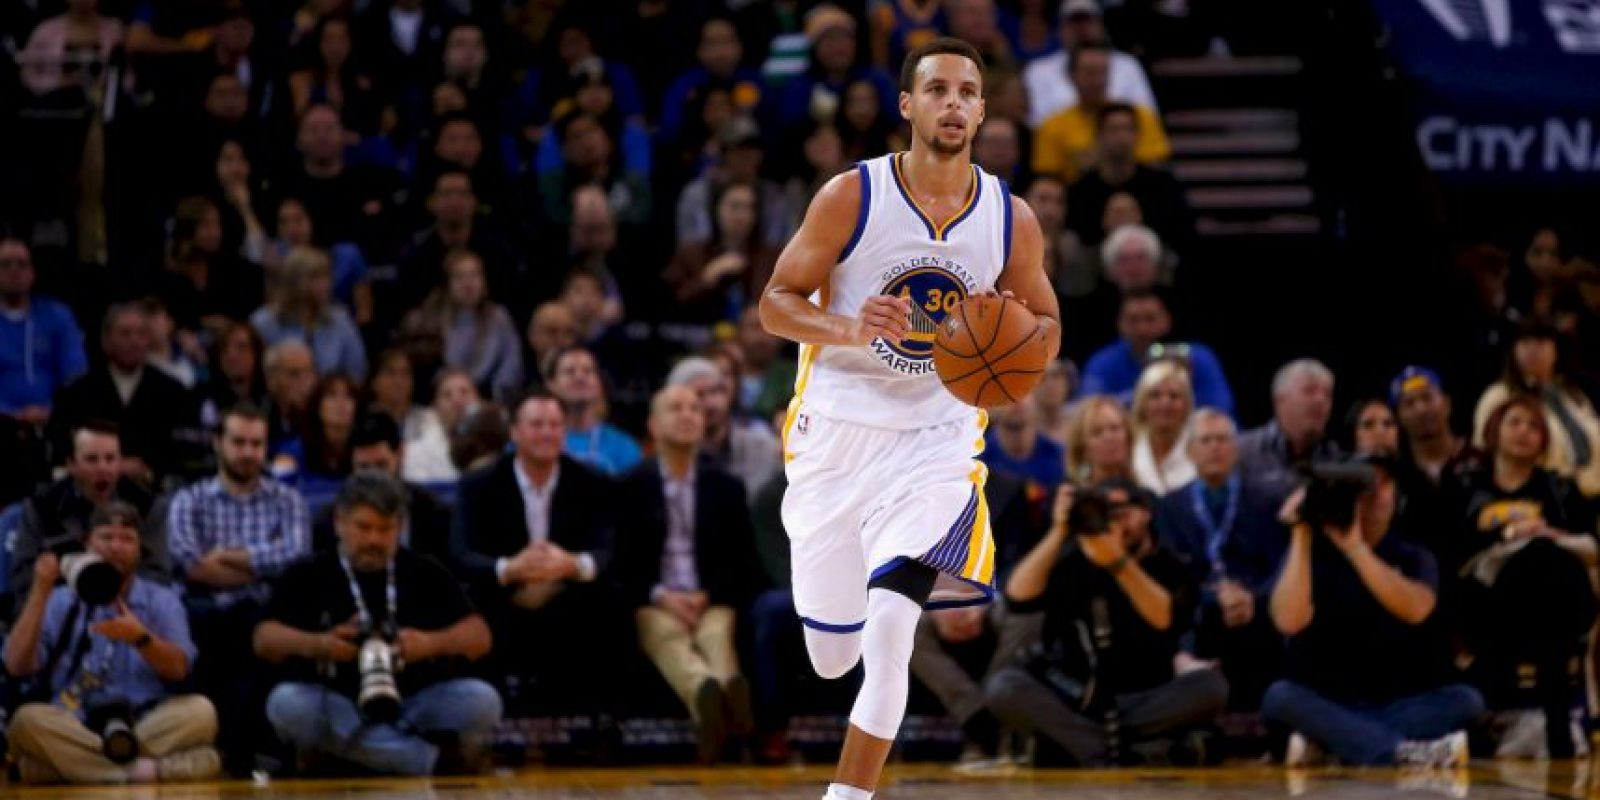 Mantiene invicto de Golden State Foto: Getty Images